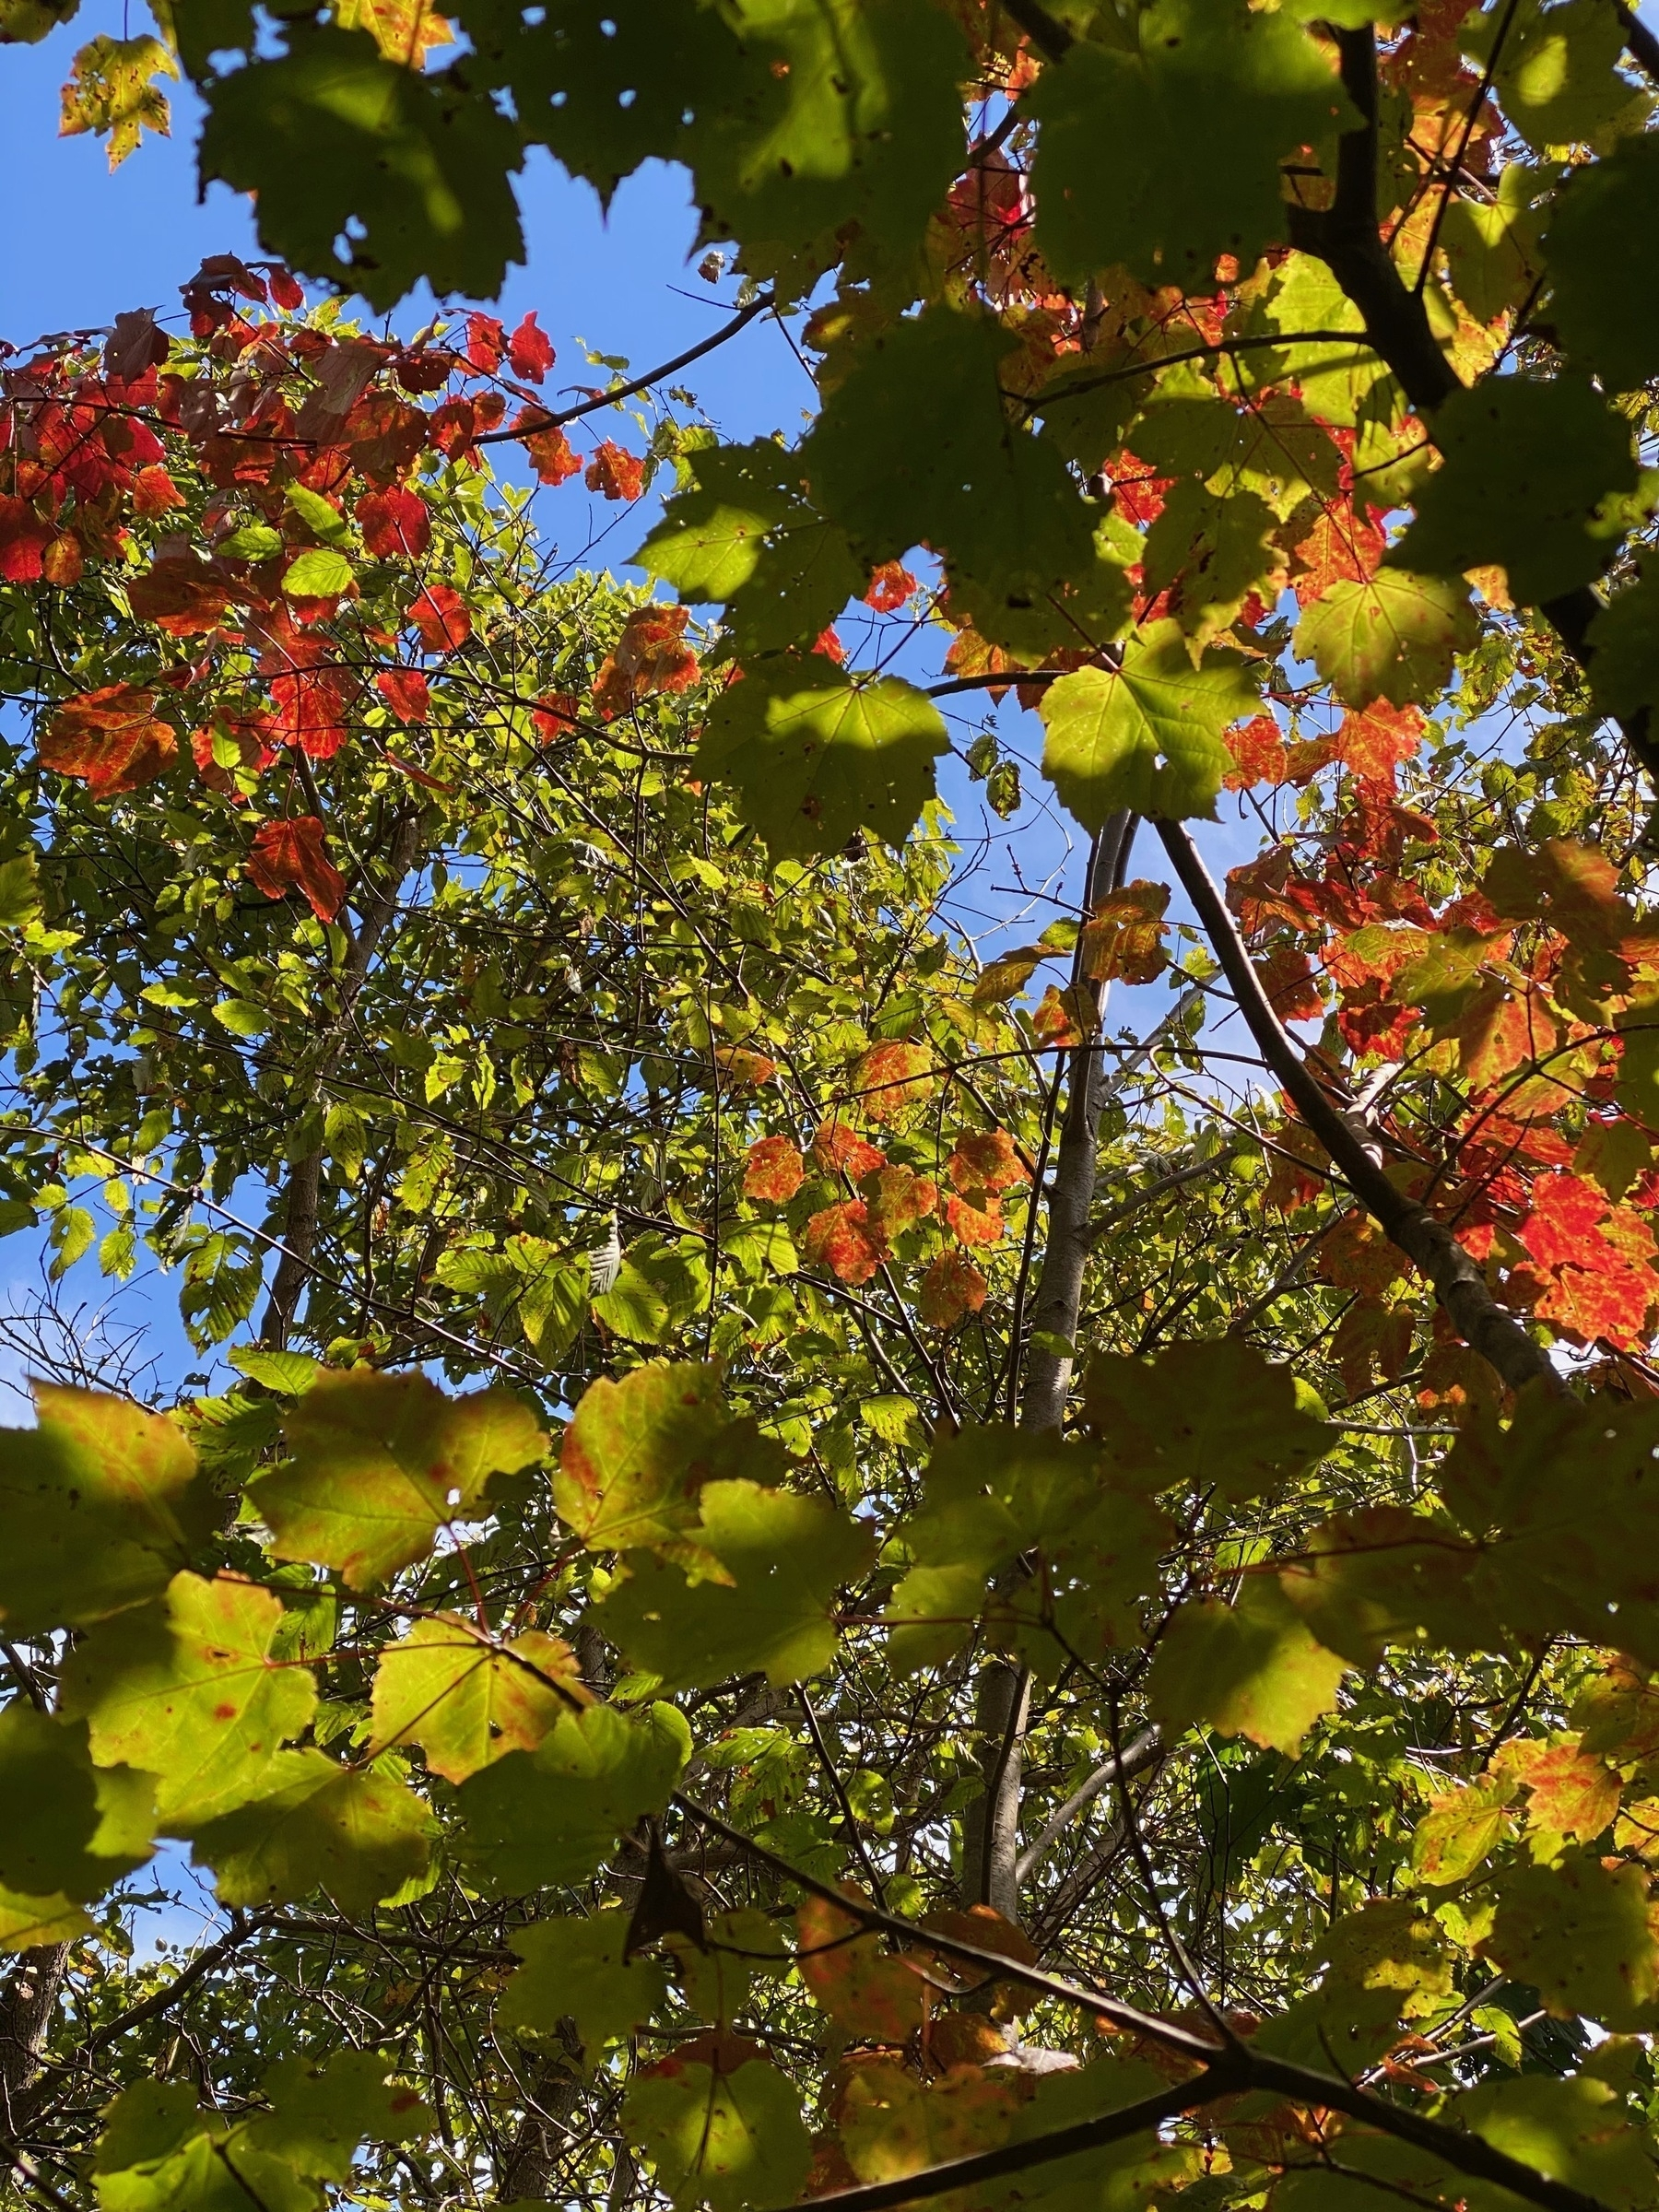 Leaves changing color.